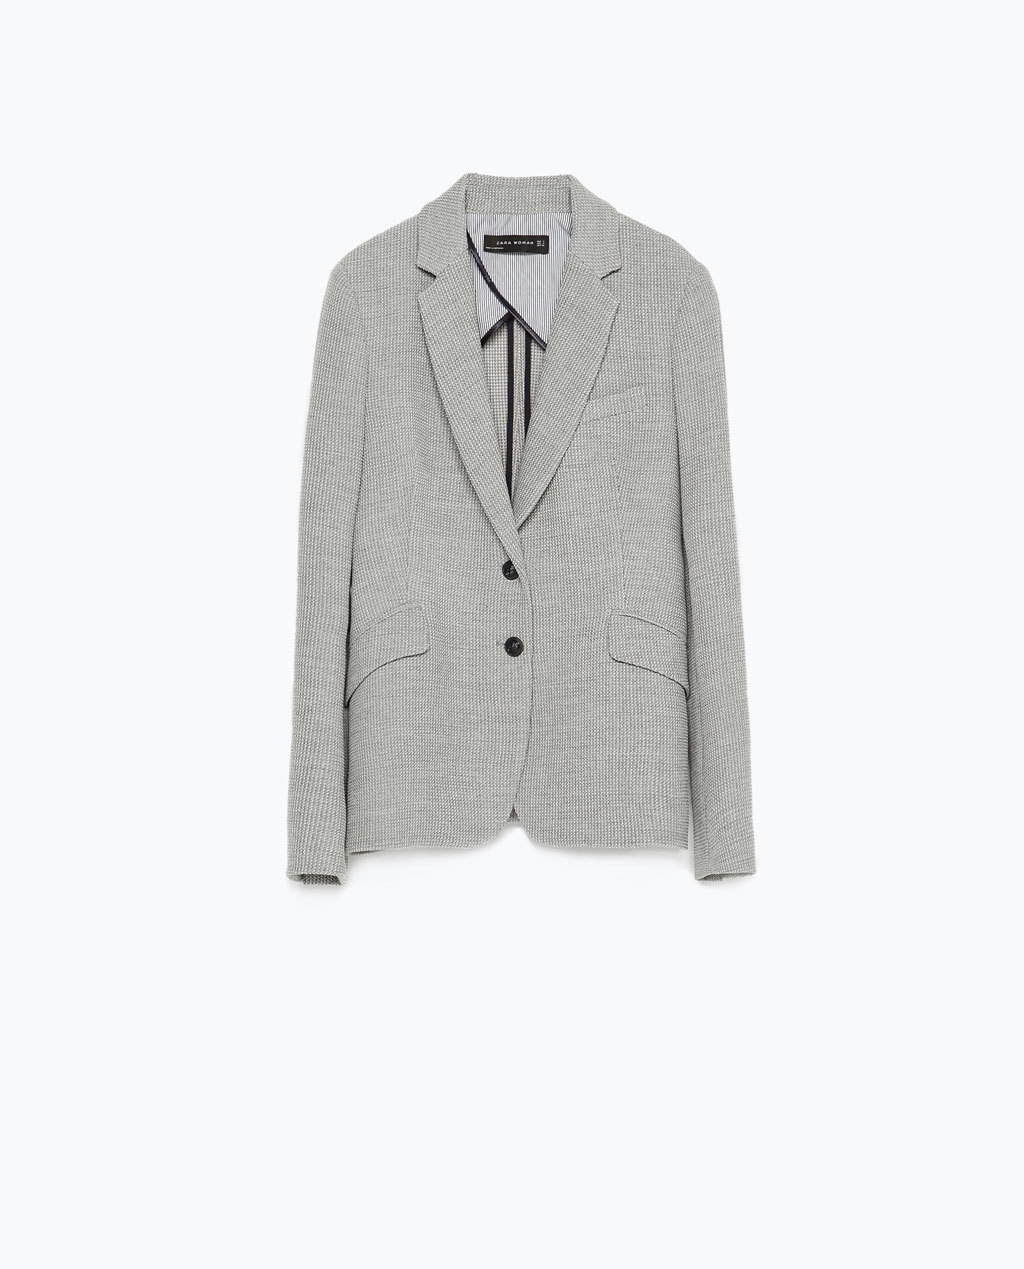 Tailored Jacket - pattern: plain; style: single breasted blazer; collar: standard lapel/rever collar; predominant colour: light grey; occasions: evening, work, creative work; length: standard; fit: tailored/fitted; fibres: polyester/polyamide - stretch; sleeve length: long sleeve; sleeve style: standard; collar break: medium; pattern type: fabric; texture group: woven light midweight; season: s/s 2015; wardrobe: investment